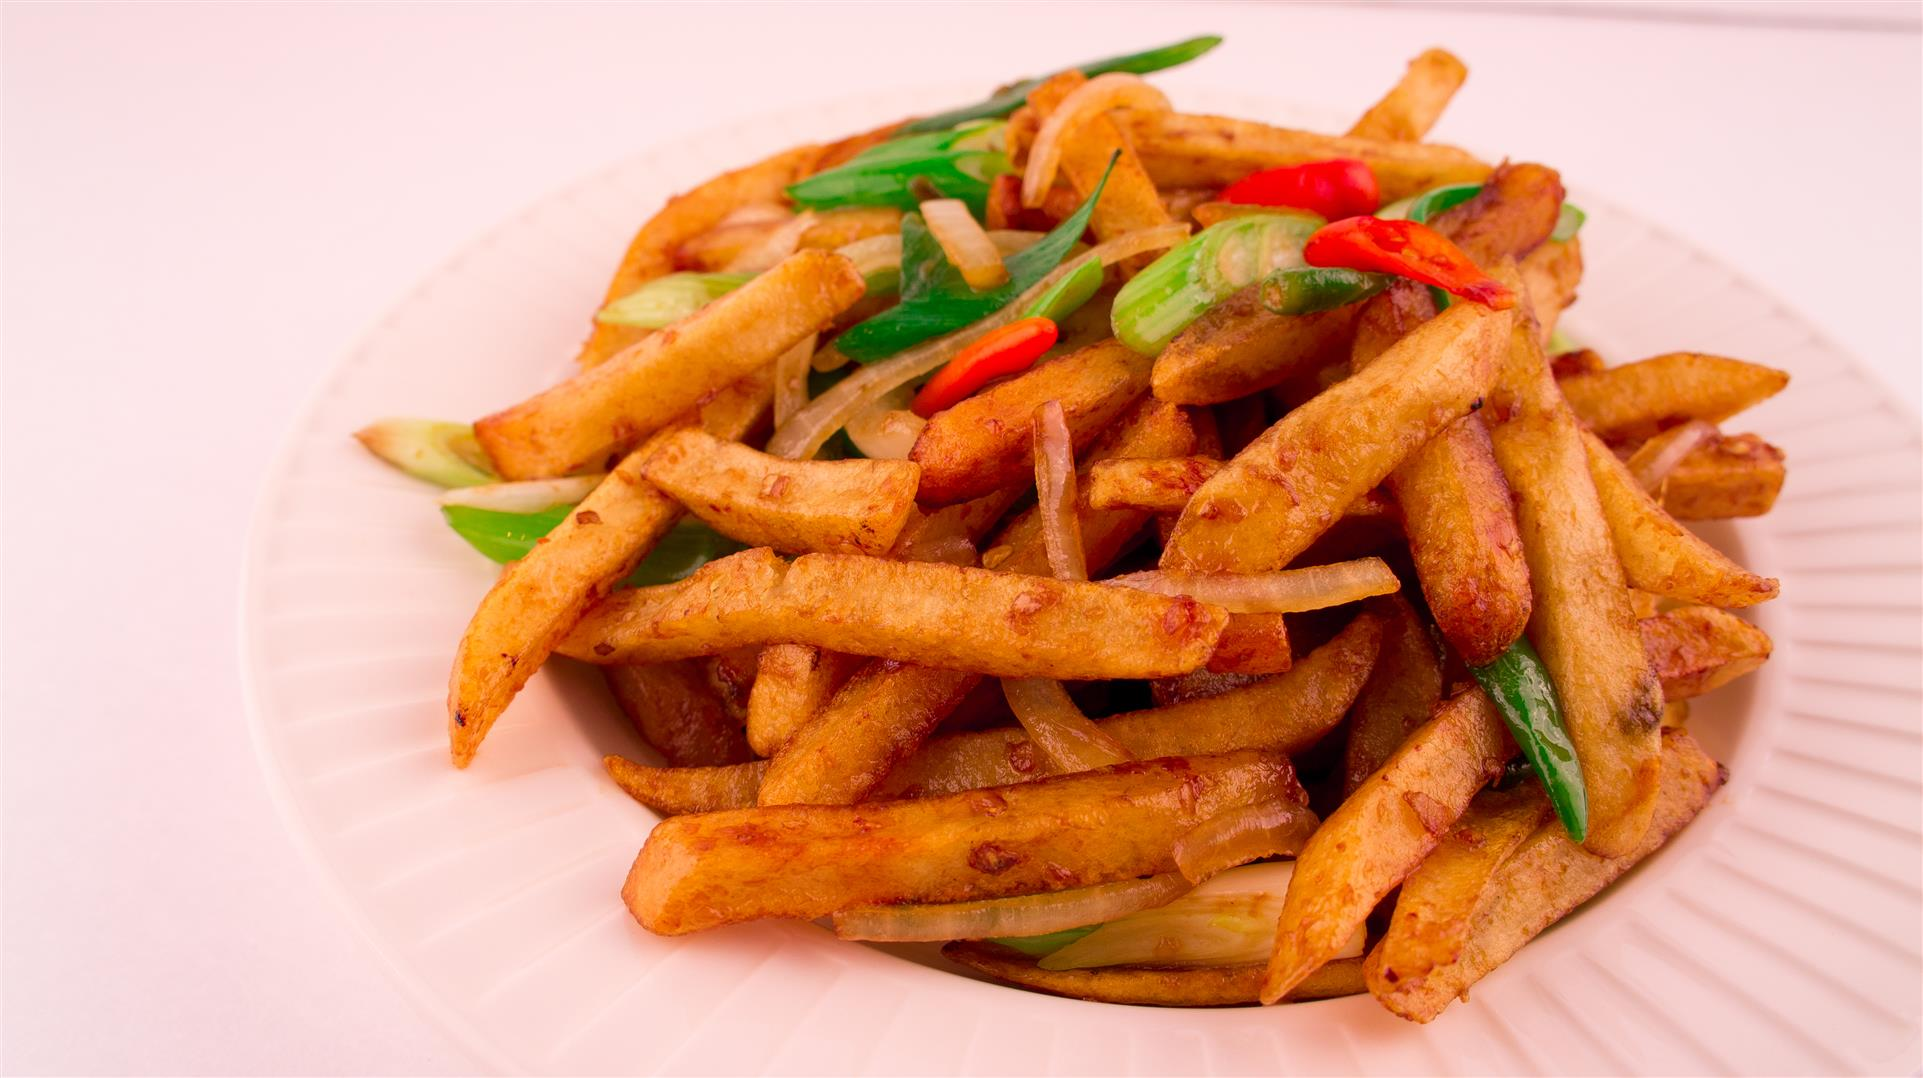 asian-style poutine, with onion, peppers, scallions, and french fries in a sauce